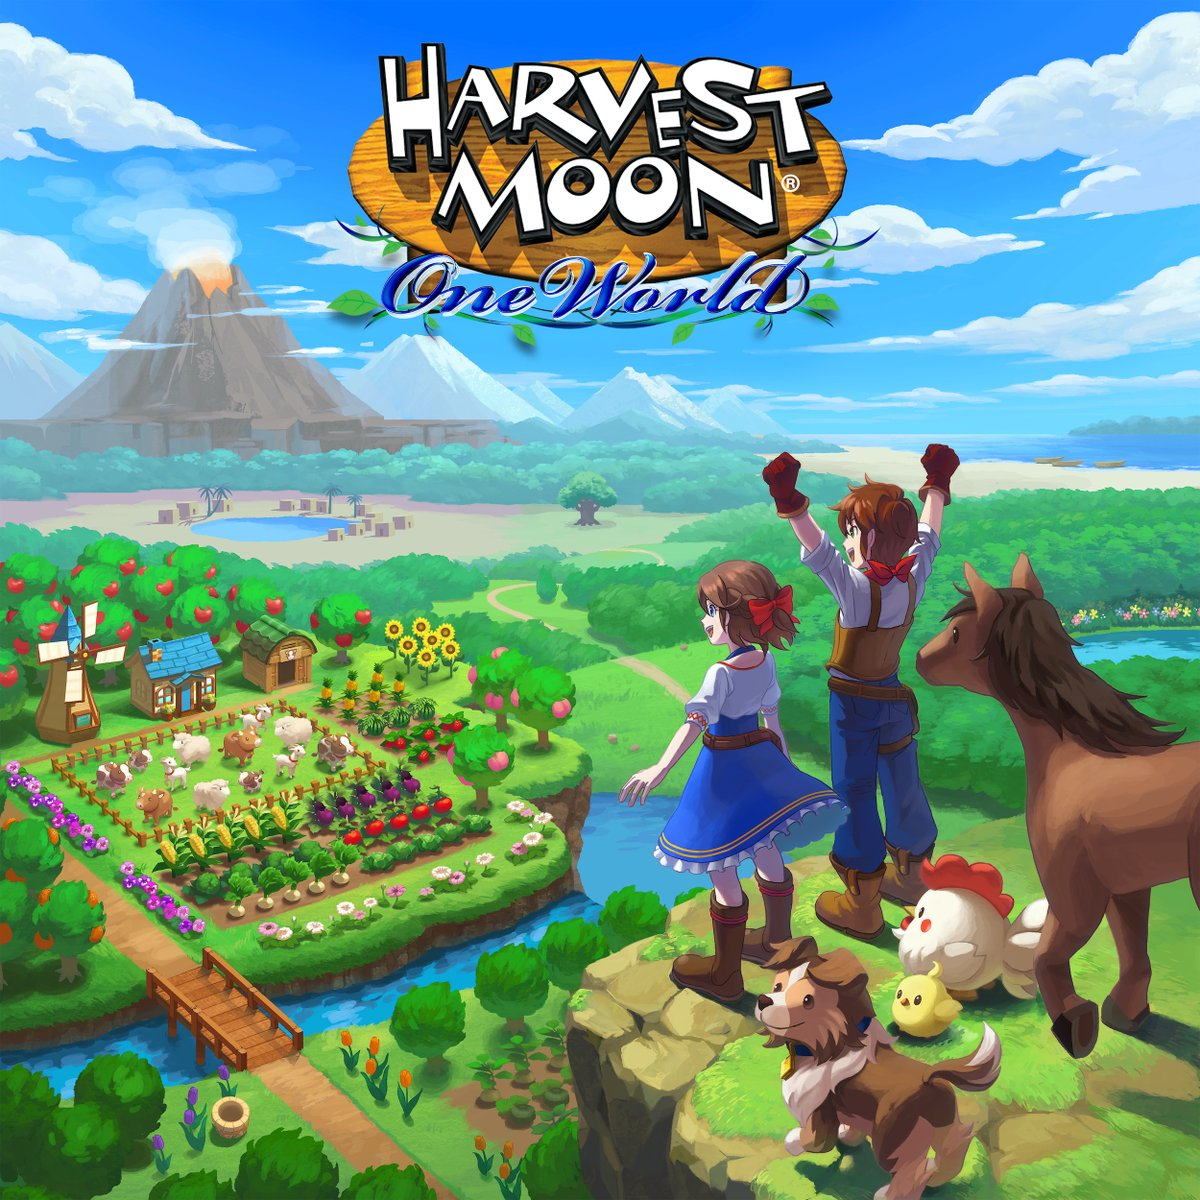 Replying to @RisingStarGames: Sharing this lovely piece of art from #HarvestMoon: One World!  What game art makes you smile?